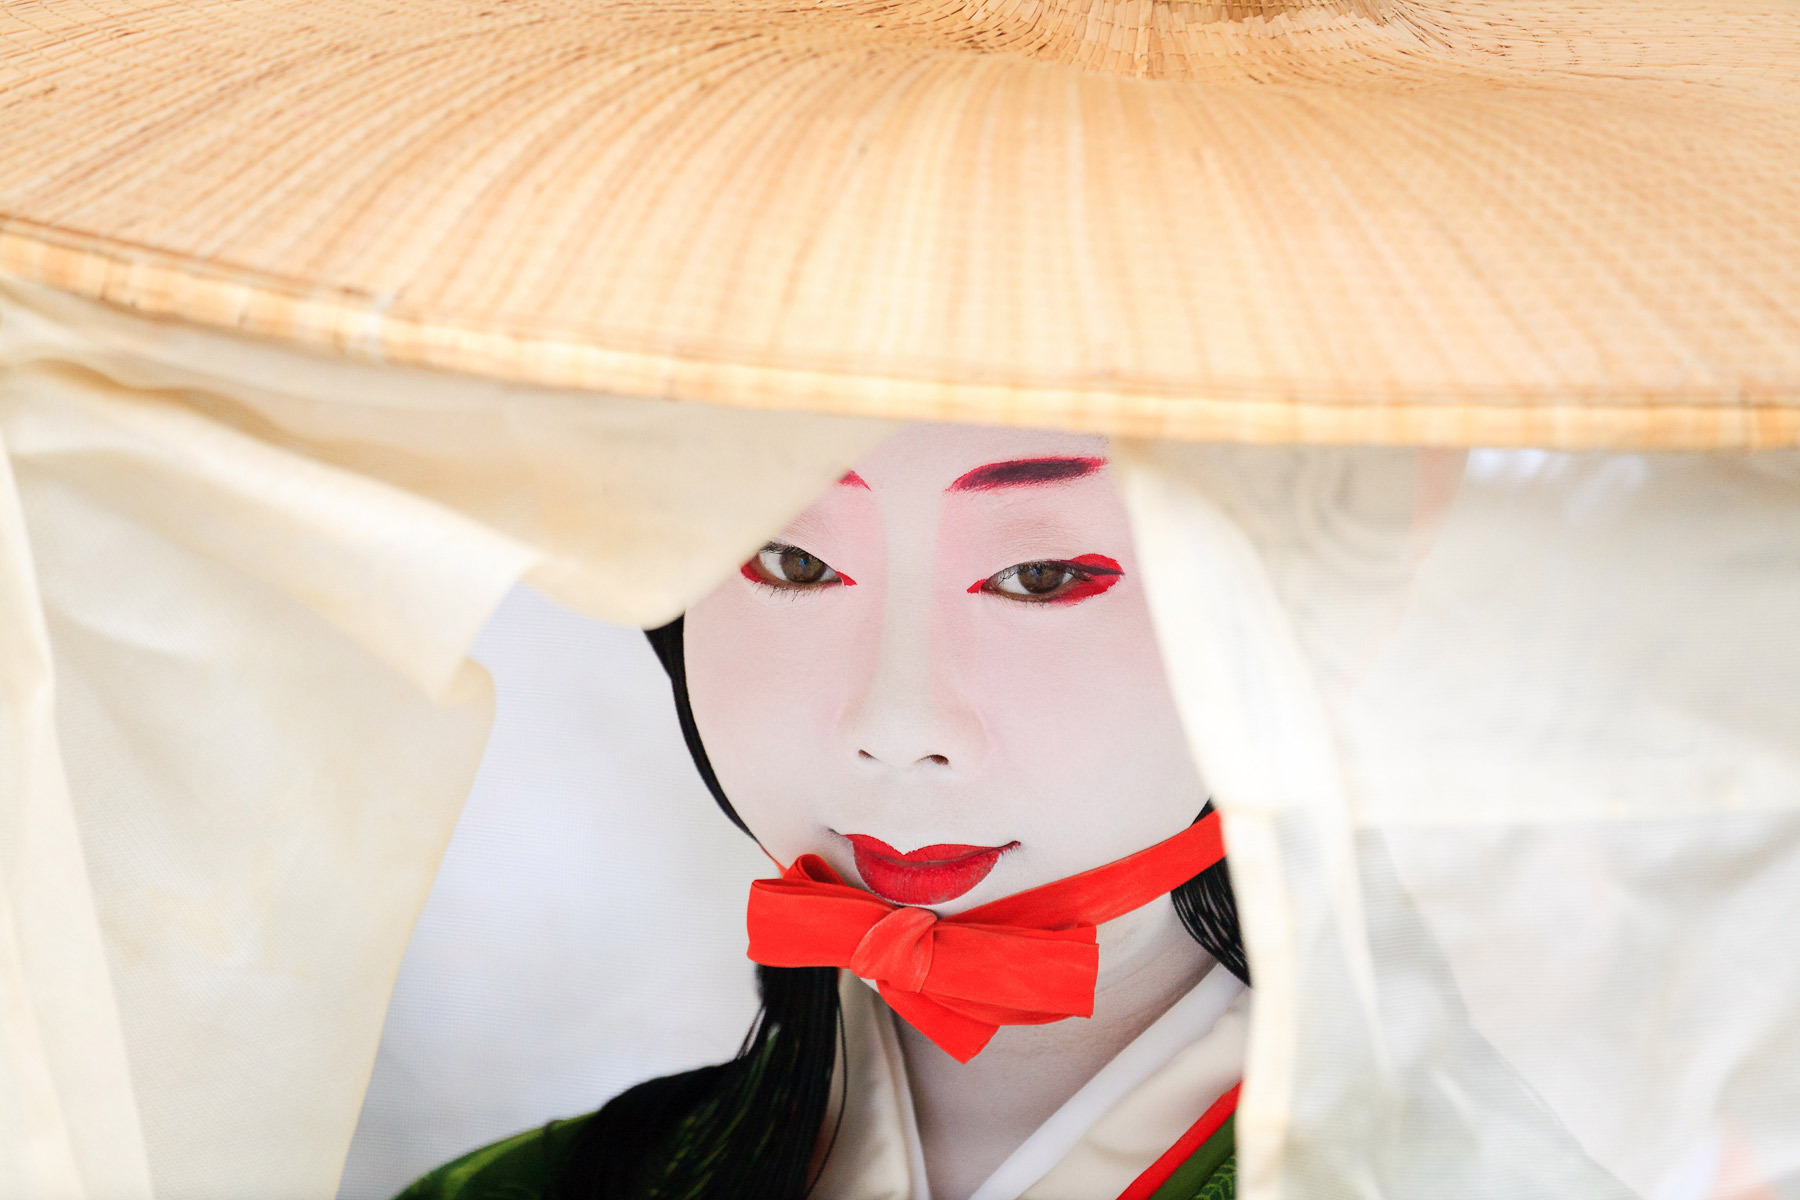 A women dressed in traditional costume for the Jidai Matsuri (Festial of the Ages), Kyoto, Japan.